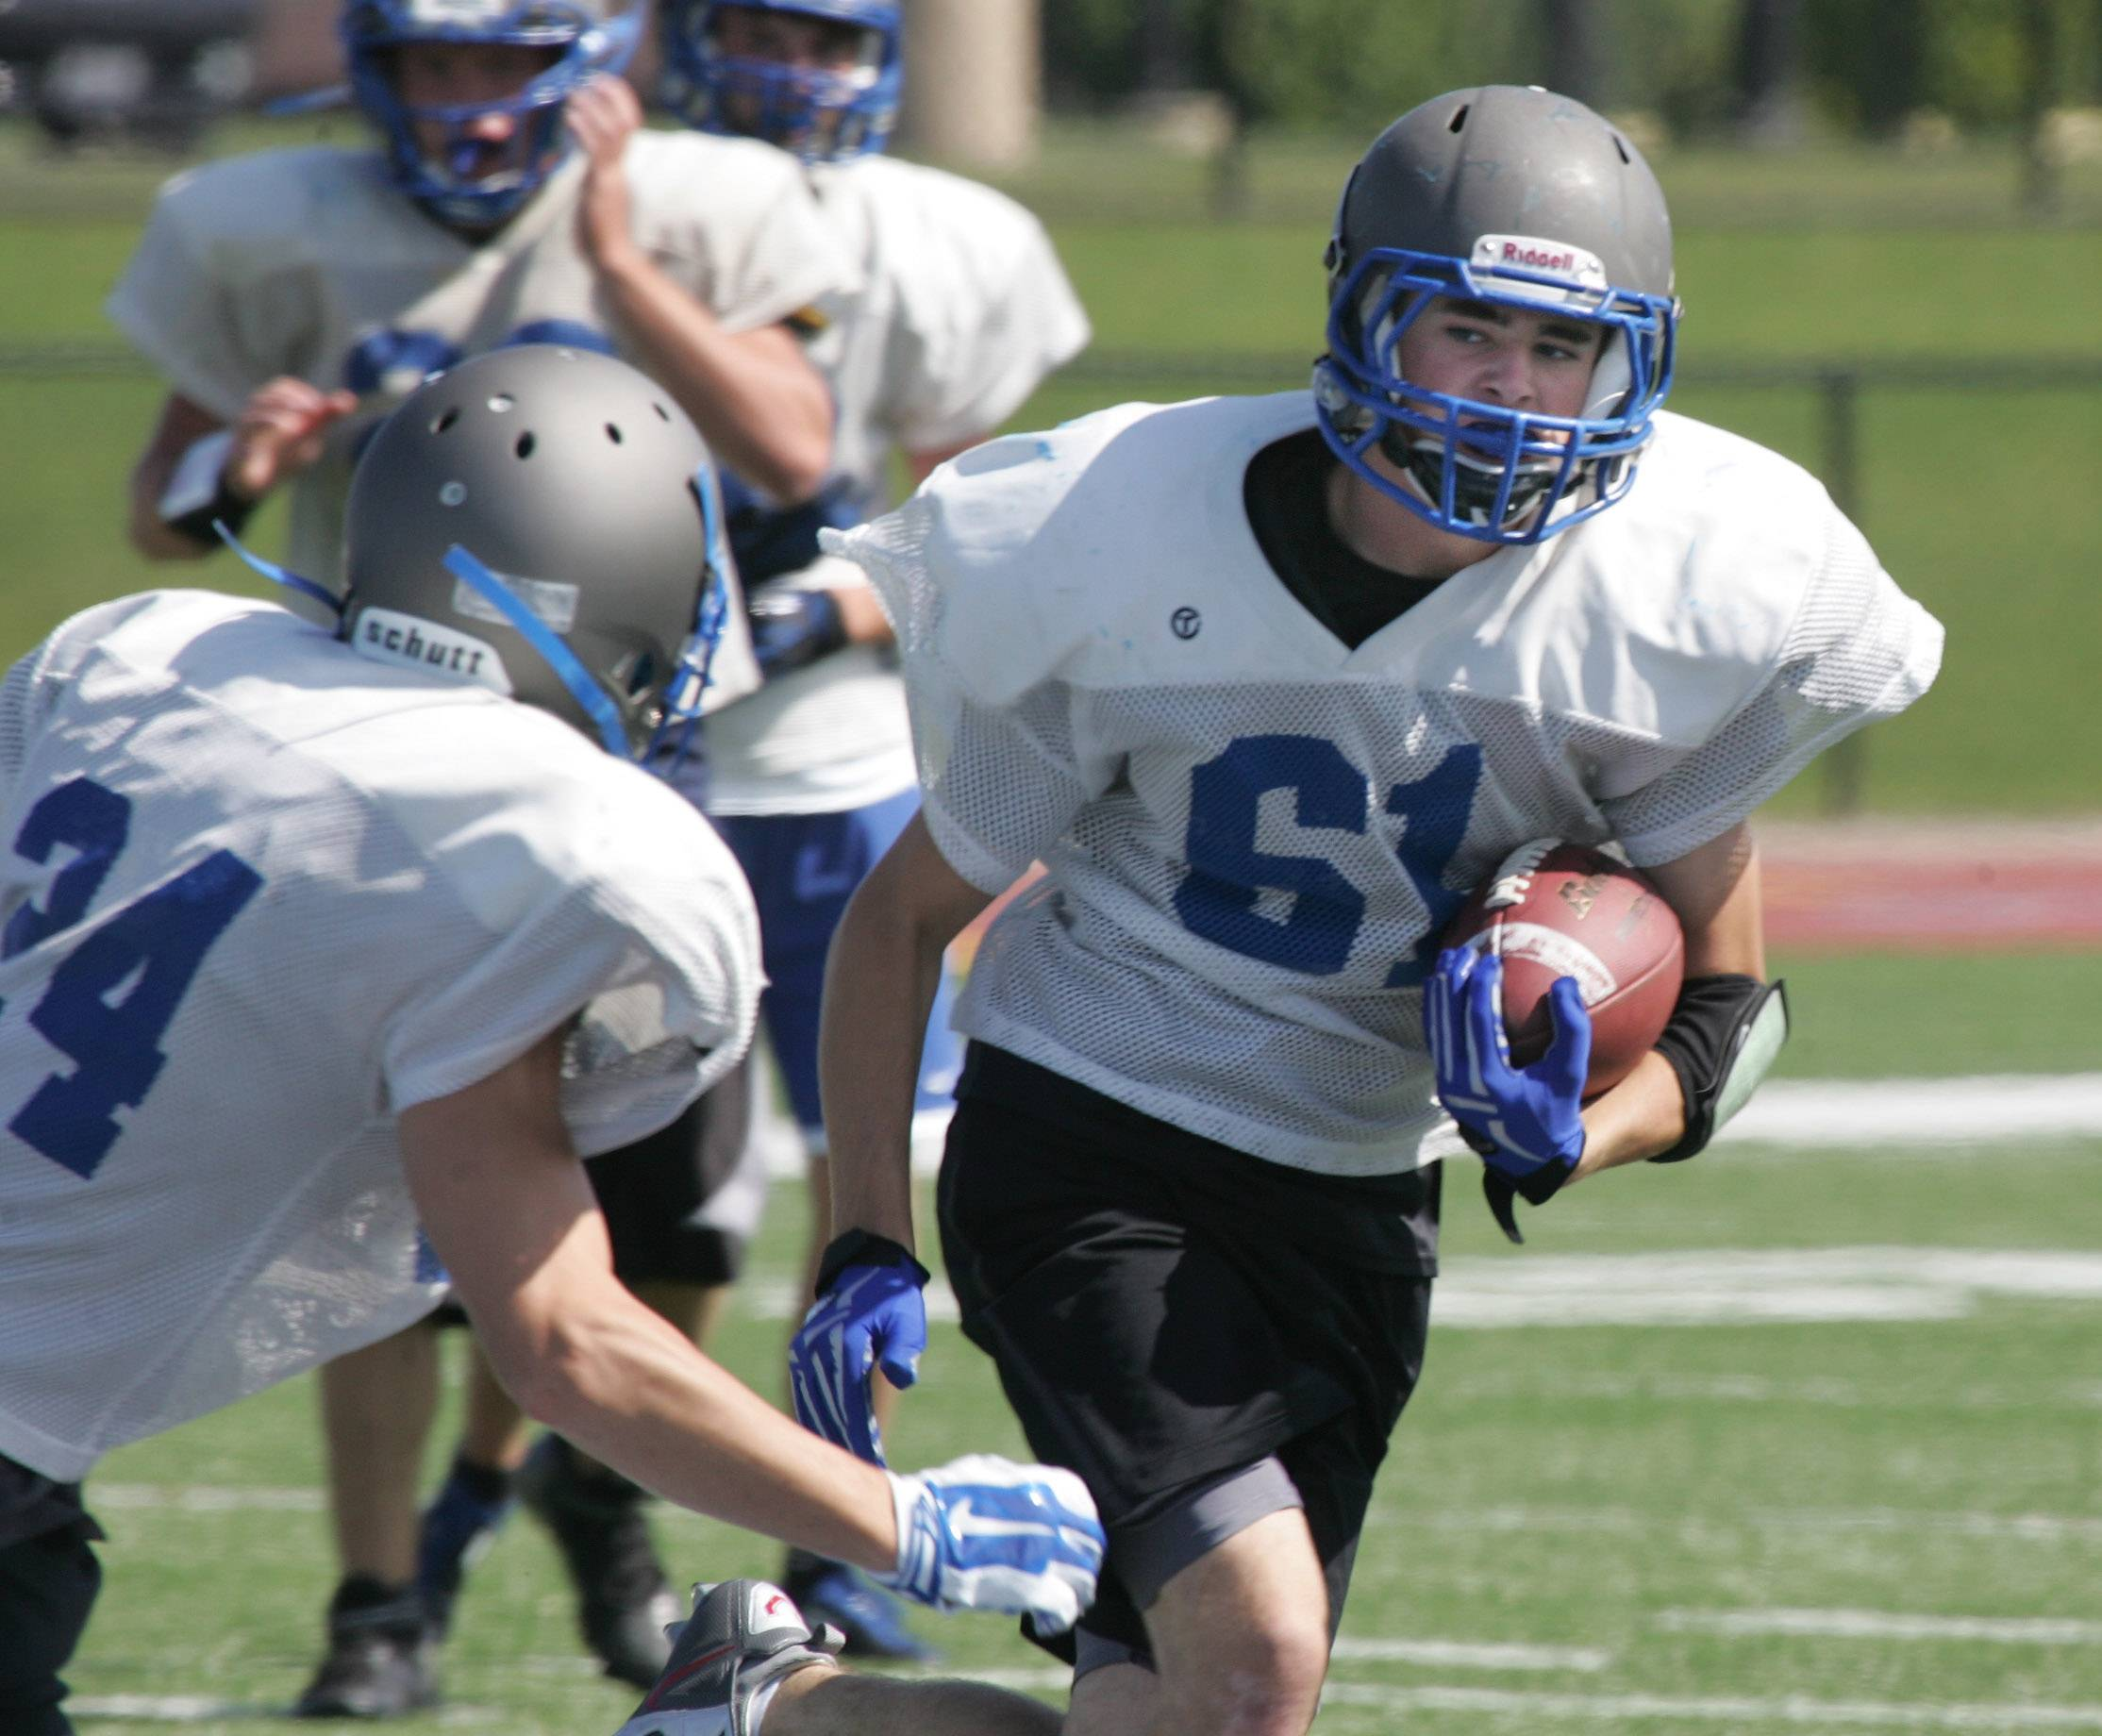 Drew Winegar runs with the ball during football practice at Vernon Hills High School Thursday.